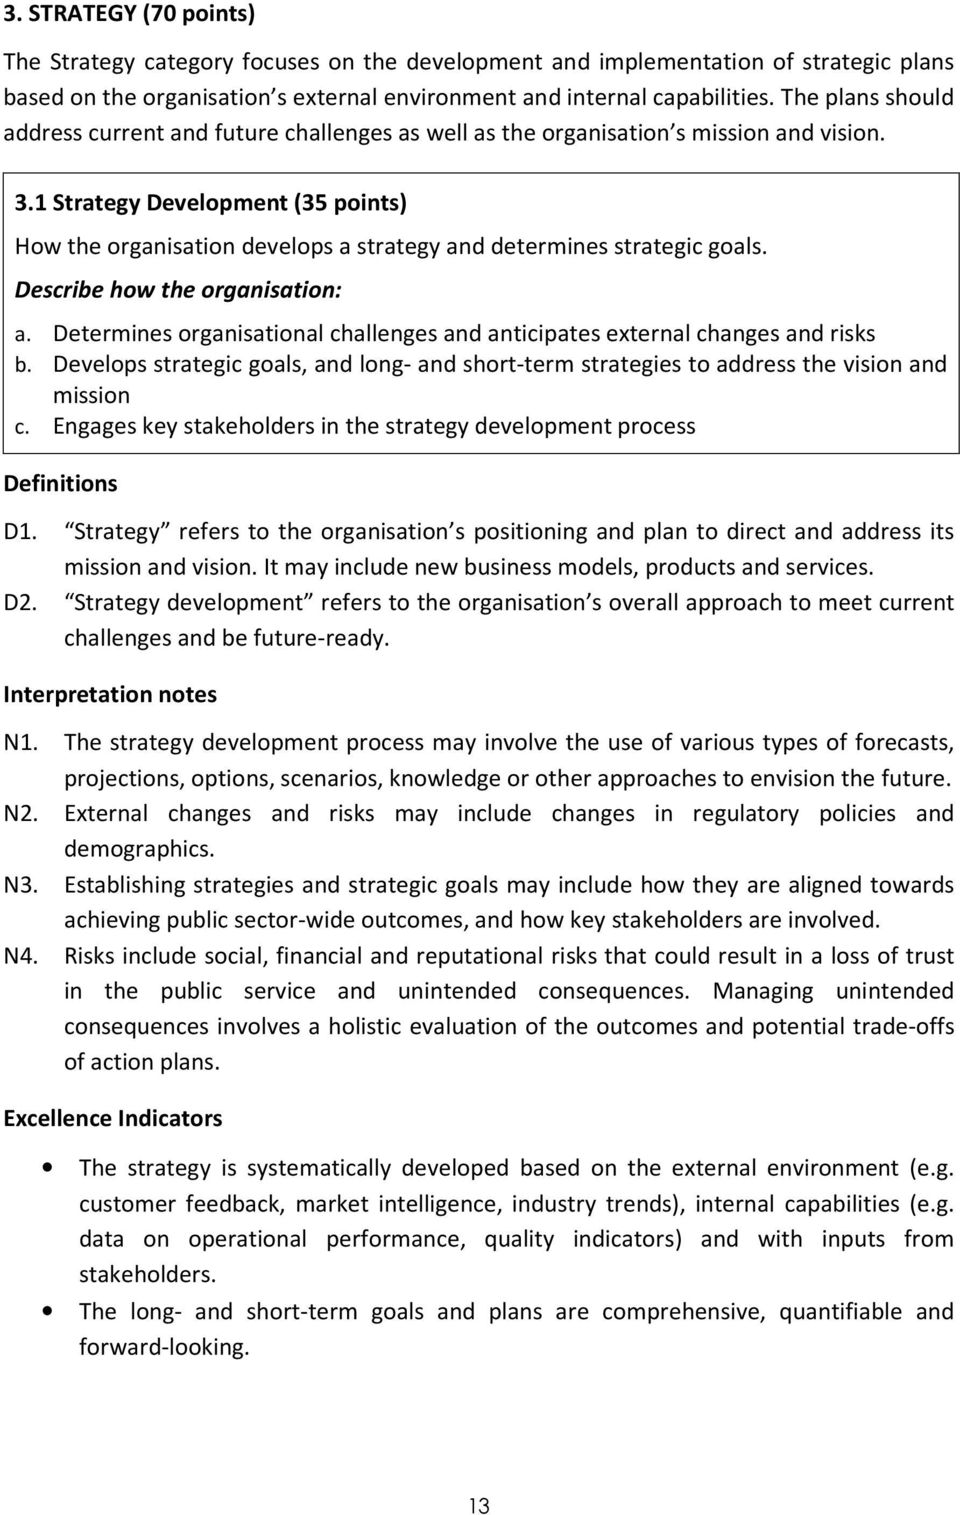 1 Strategy Development (35 points) How the organisation develops a strategy and determines strategic goals. a. Determines organisational challenges and anticipates external changes and risks b.